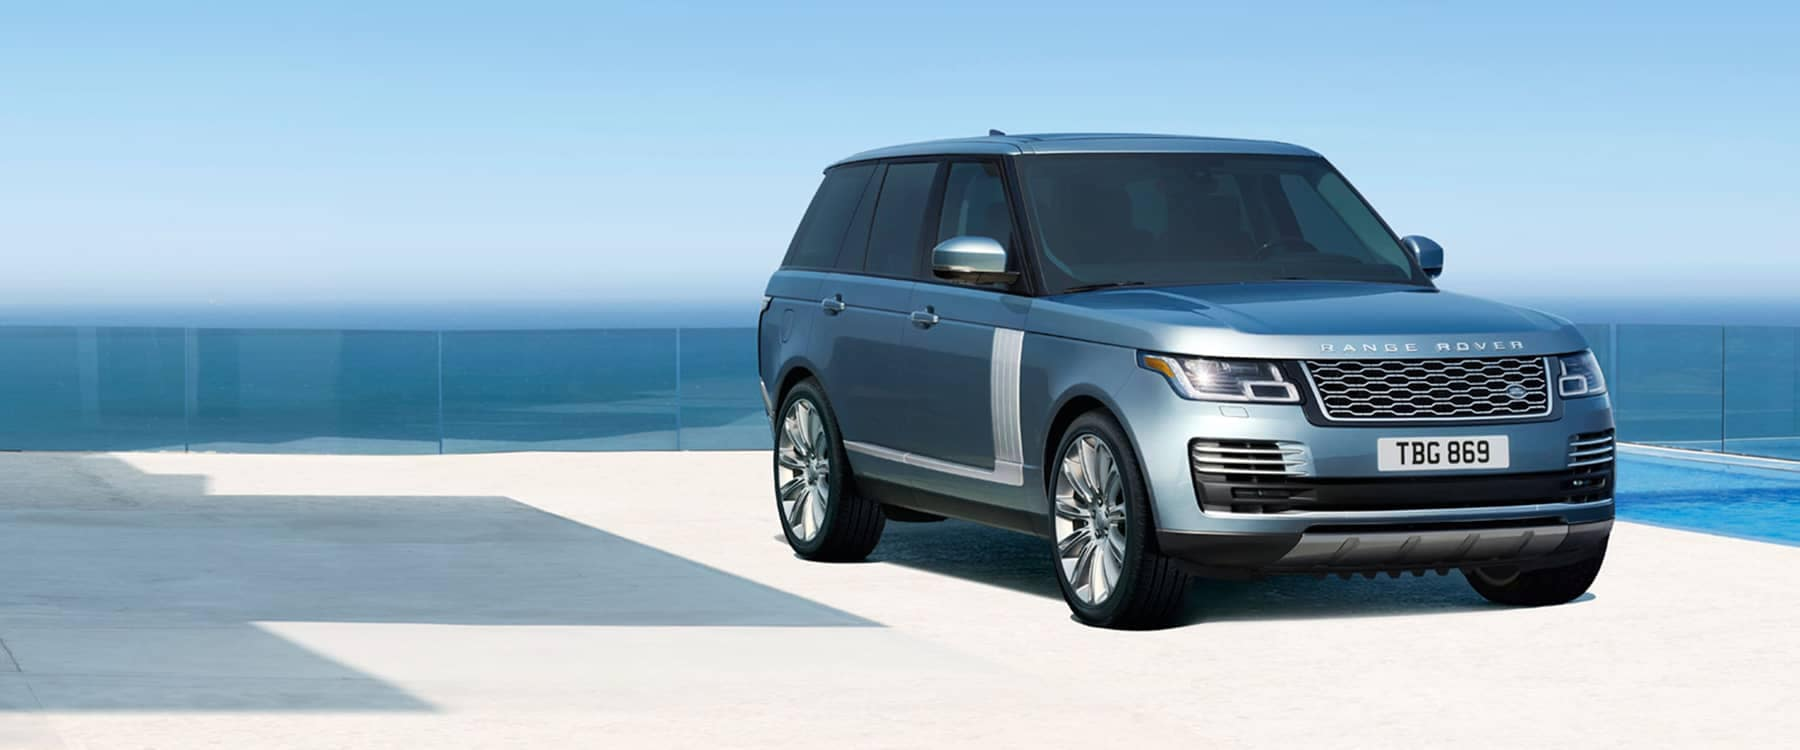 Land Rover Warranty 10 Years 100 000 Miles Land Rover Palm Beach